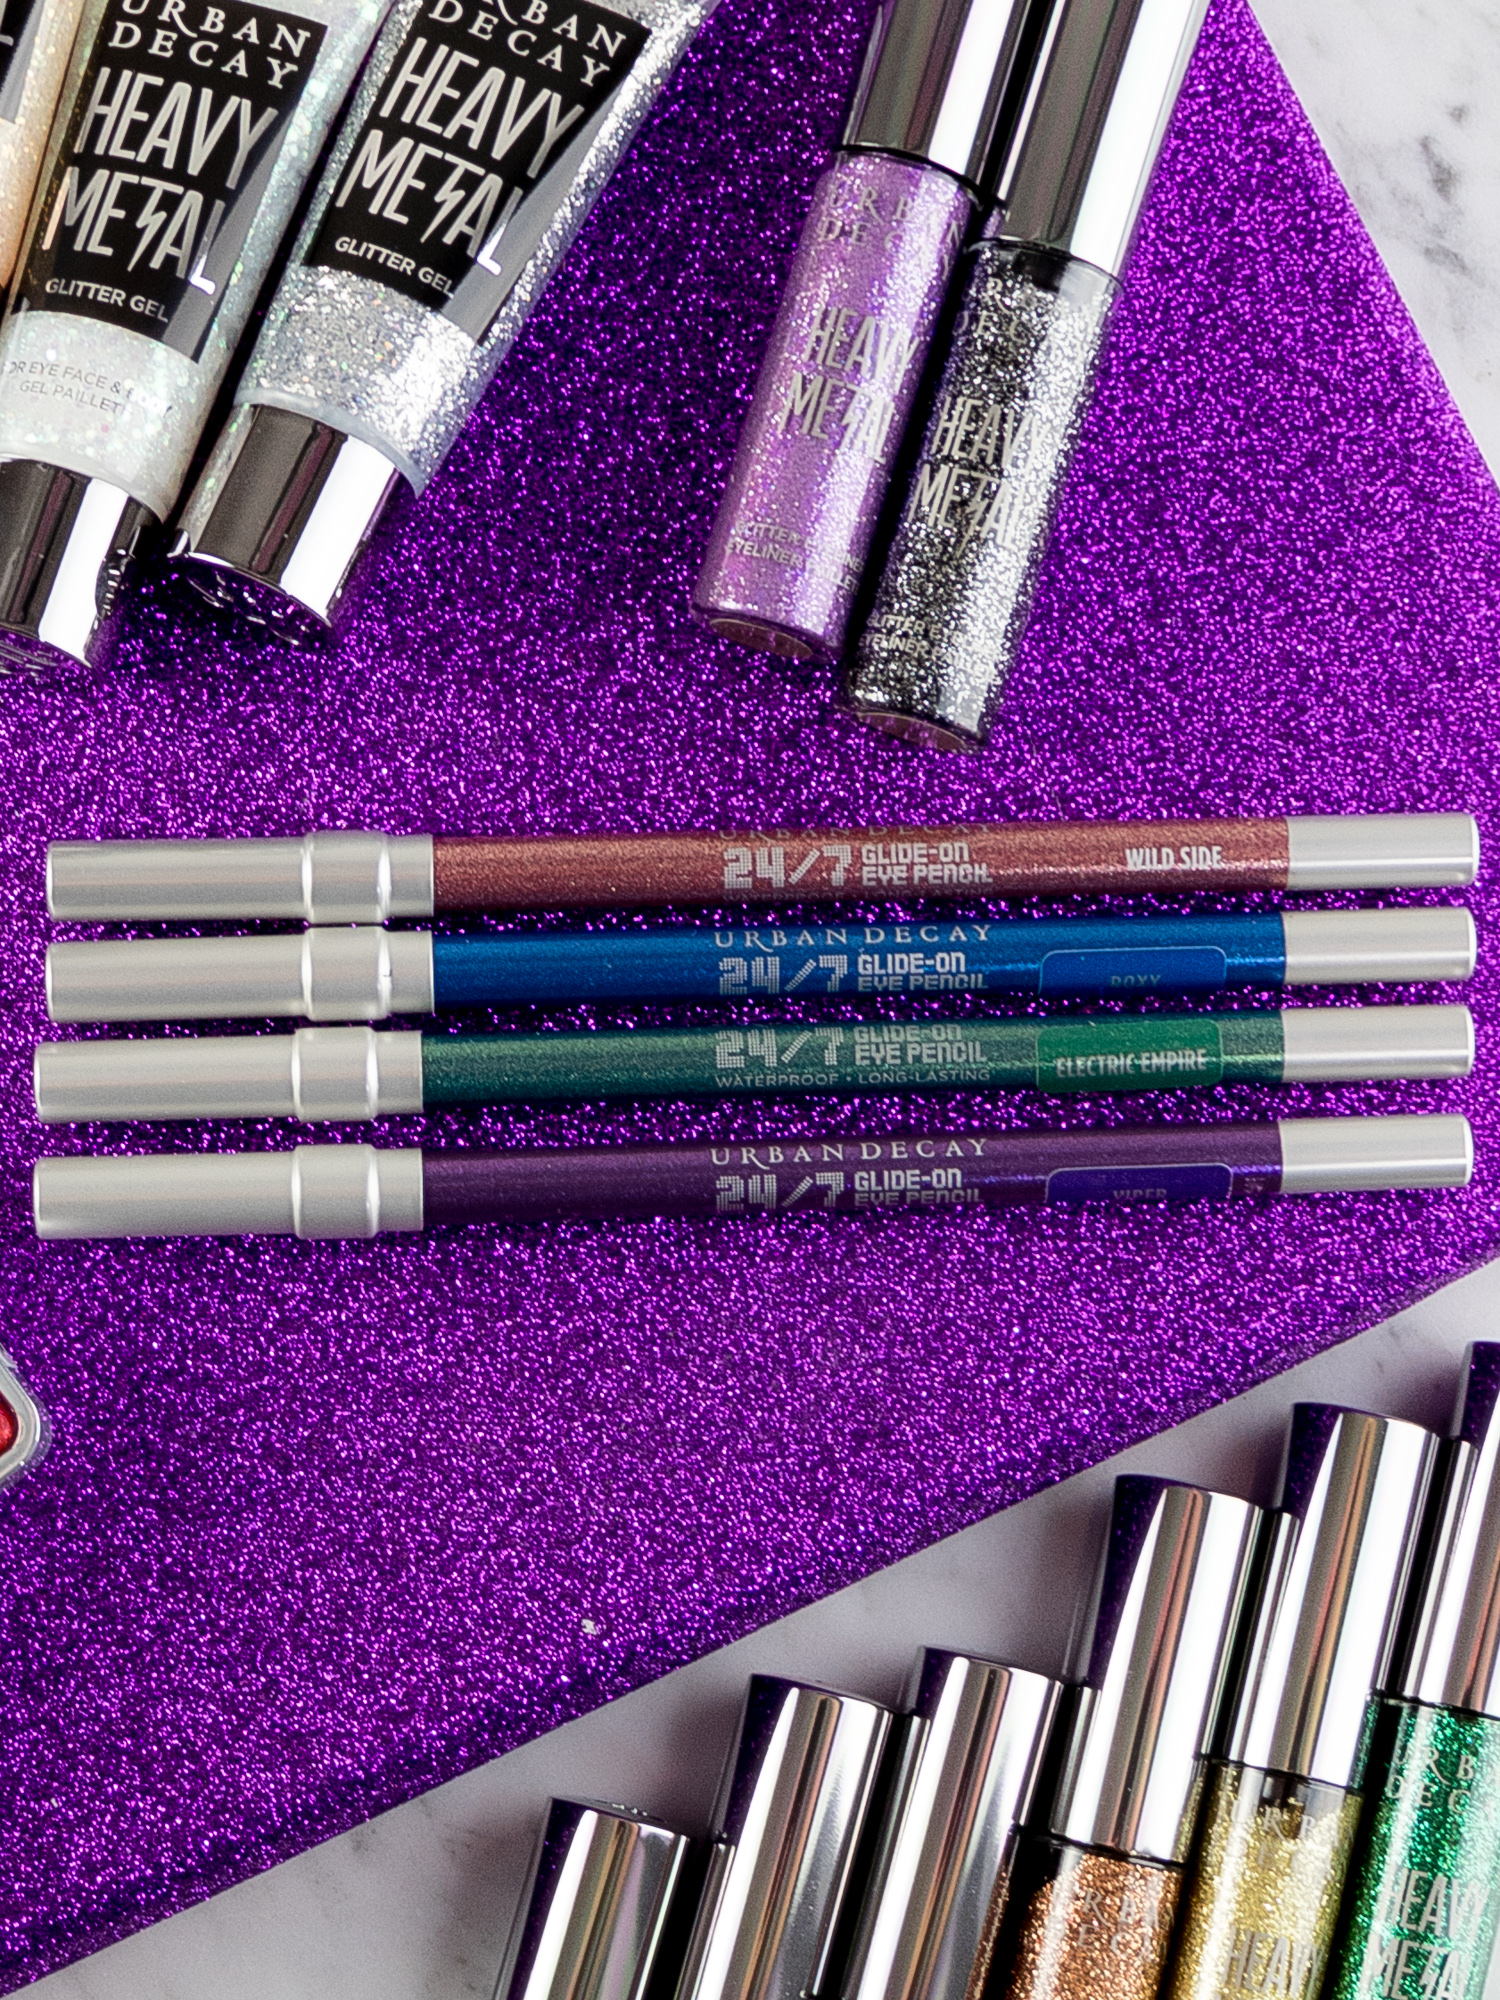 Urban Decay Sparkle Out Loud Collection Hi-Fi Shine Lipgloss 24/7 Glide-On Eye Pencil